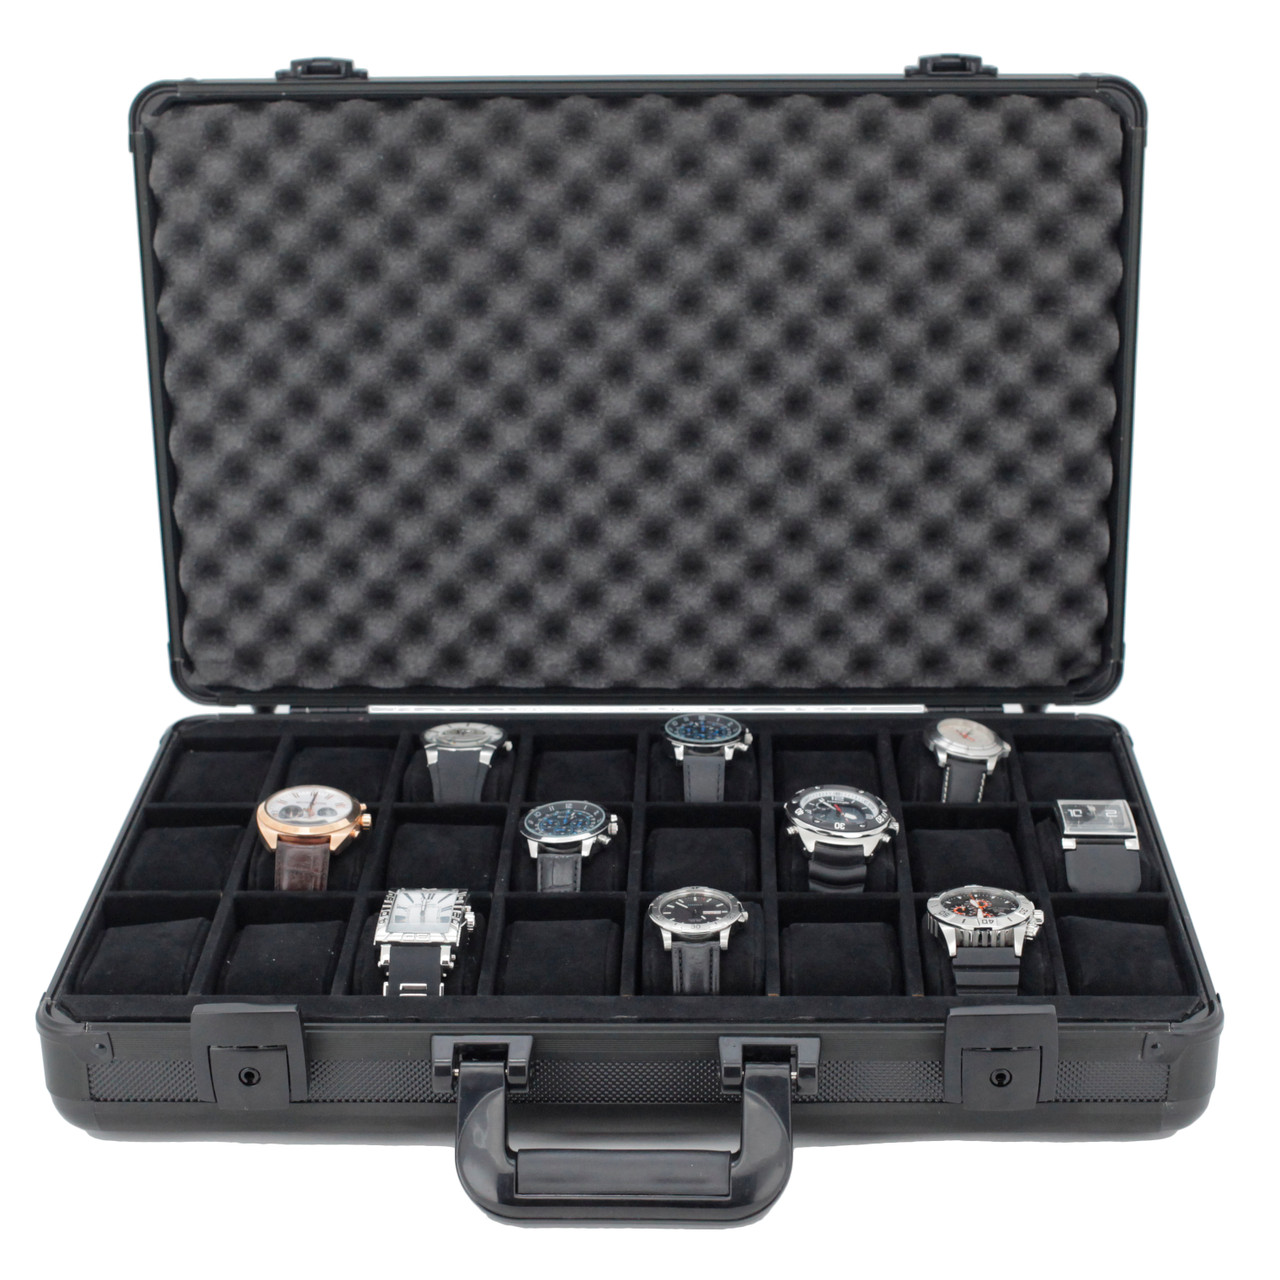 Watch Case Black Aluminum Briefcase Design For 24 Large Watches - Black